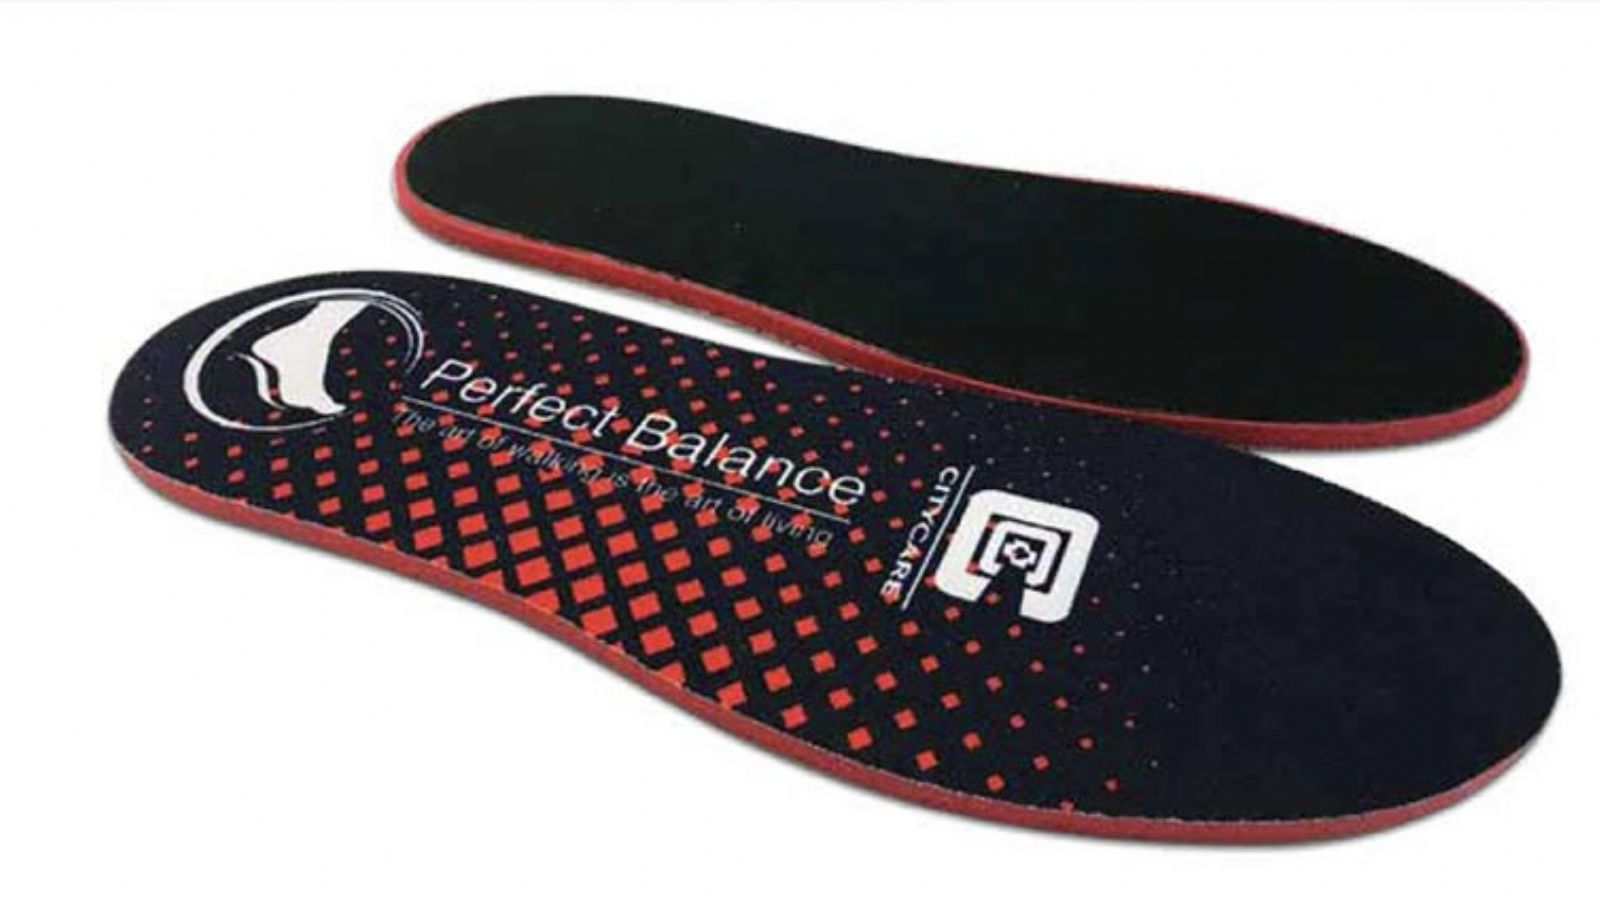 Orthotics insoles